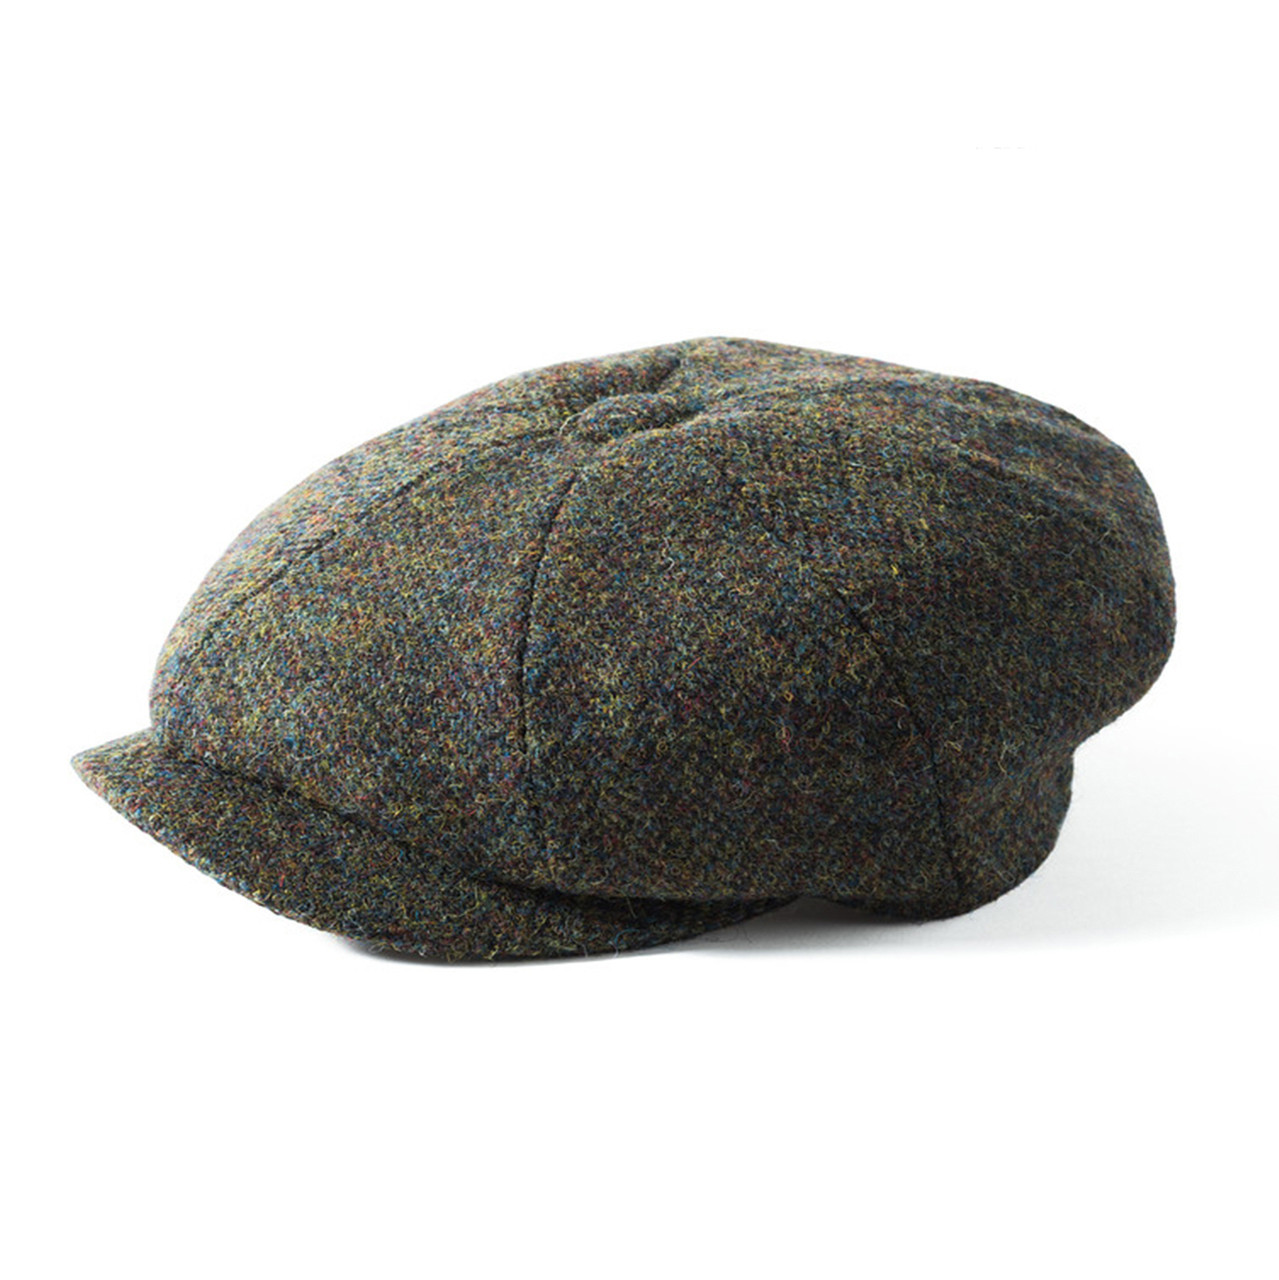 d2ac31b9312506 Failsworth Carloway Harris Tweed Newsboy Cap - Green/Brown. Price: £32.95.  Image 1